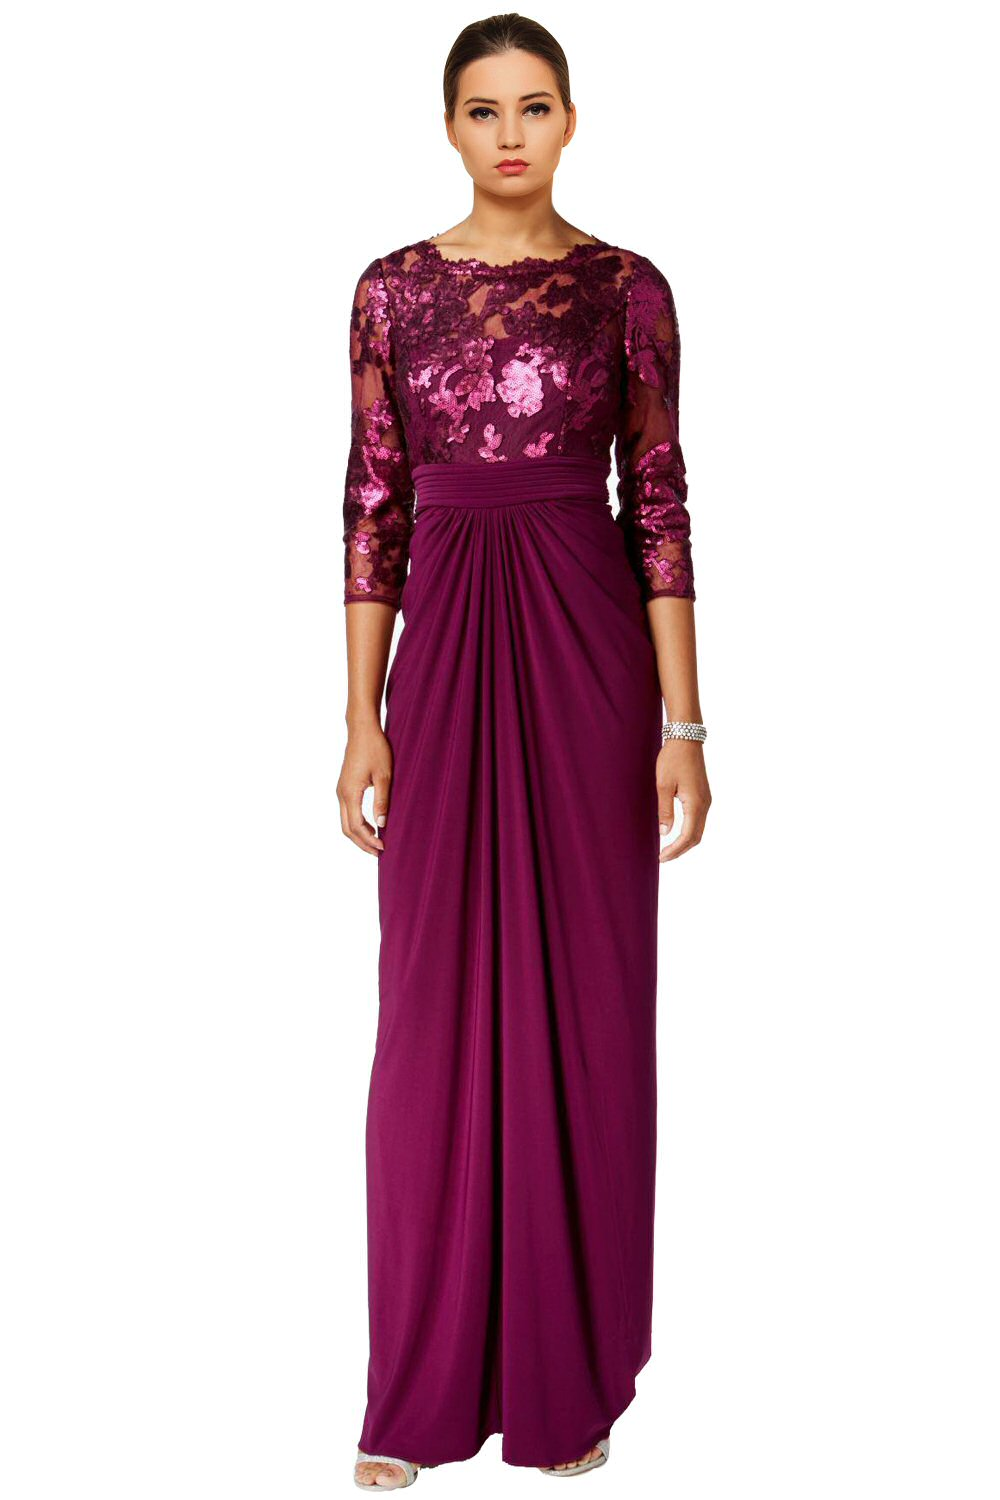 Adrianna Papell Mulberry Purple Sequin 3/4 Sleeve Illusion Evening ...